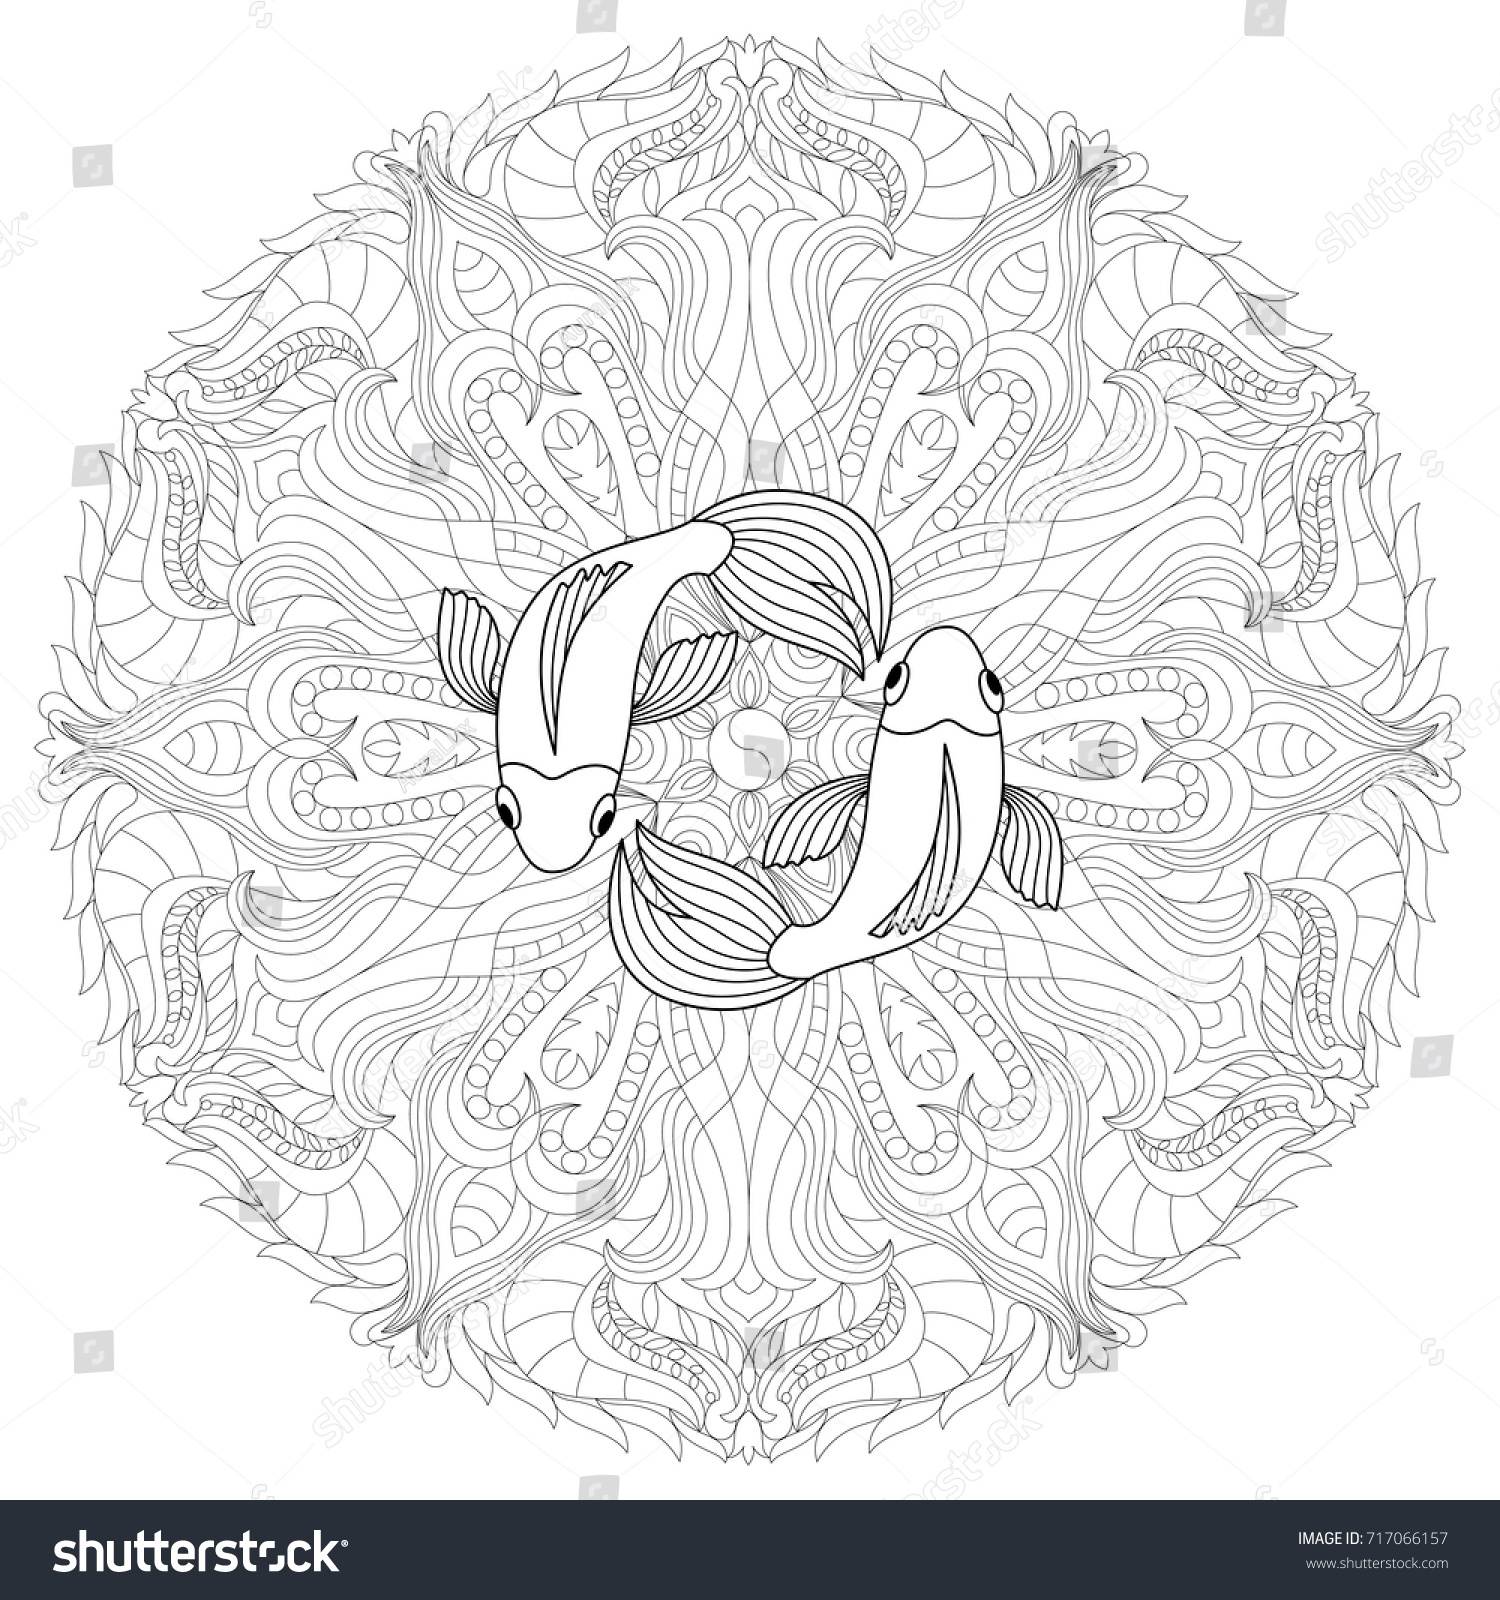 Fish Mandala Coloring Page Adults Outline Stock Vector 717066157